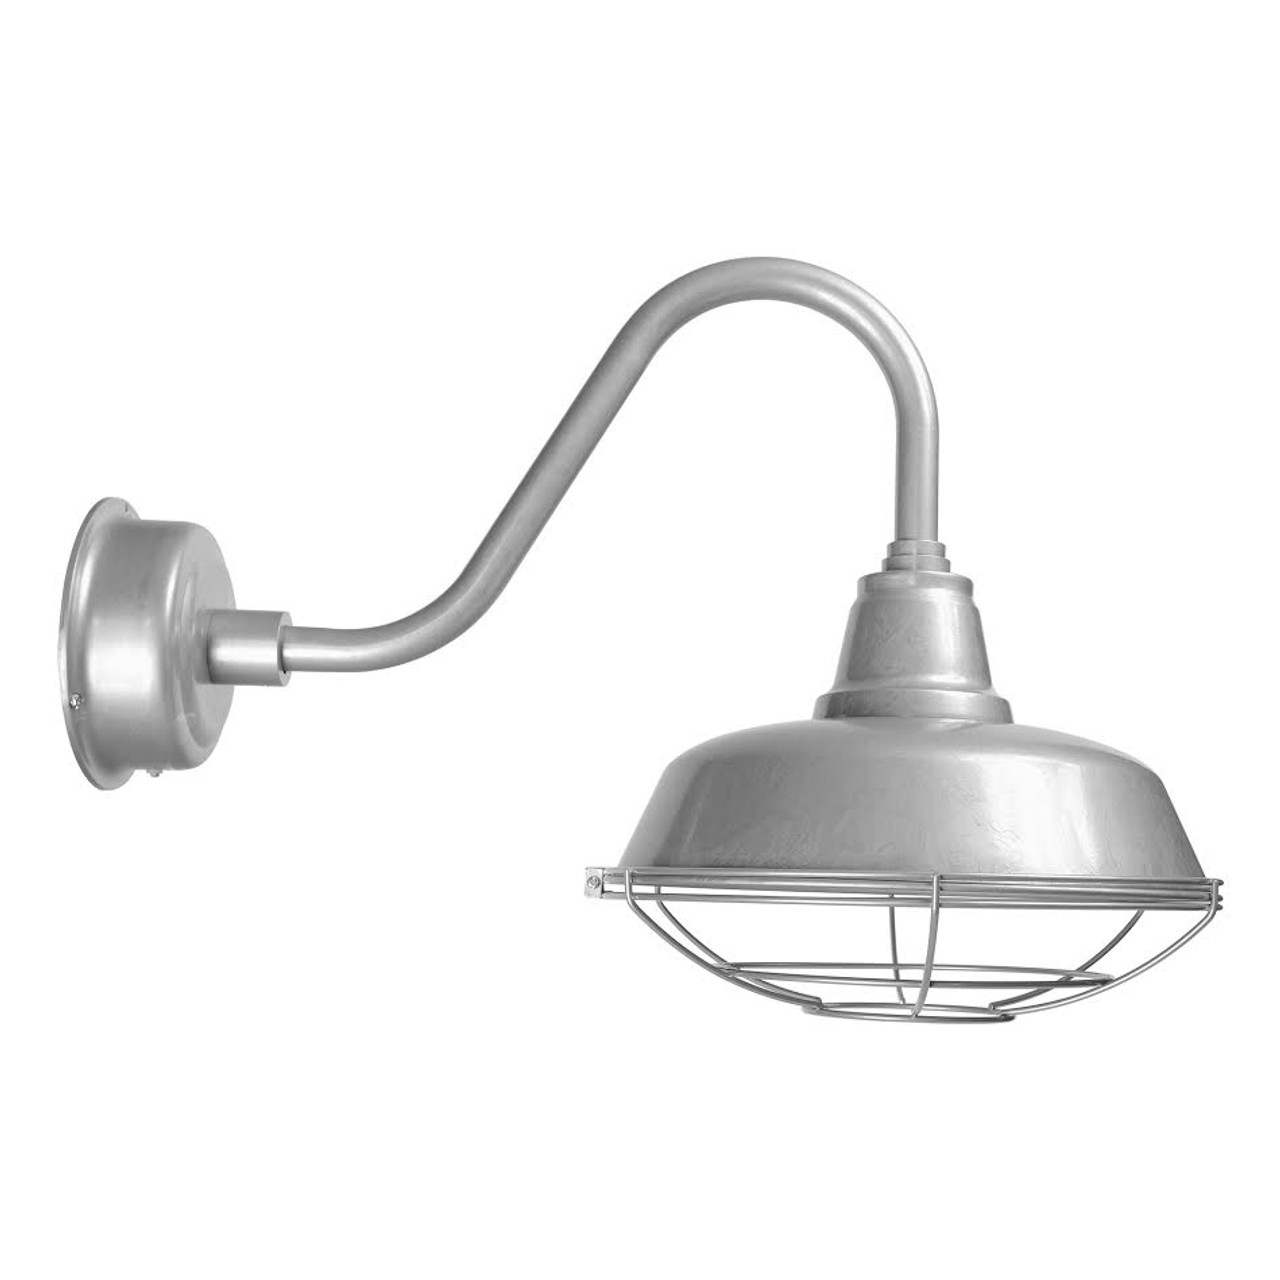 goodyear 14 quot galvanized silver rustic led barn light w Galvanized Barn Light id=90107